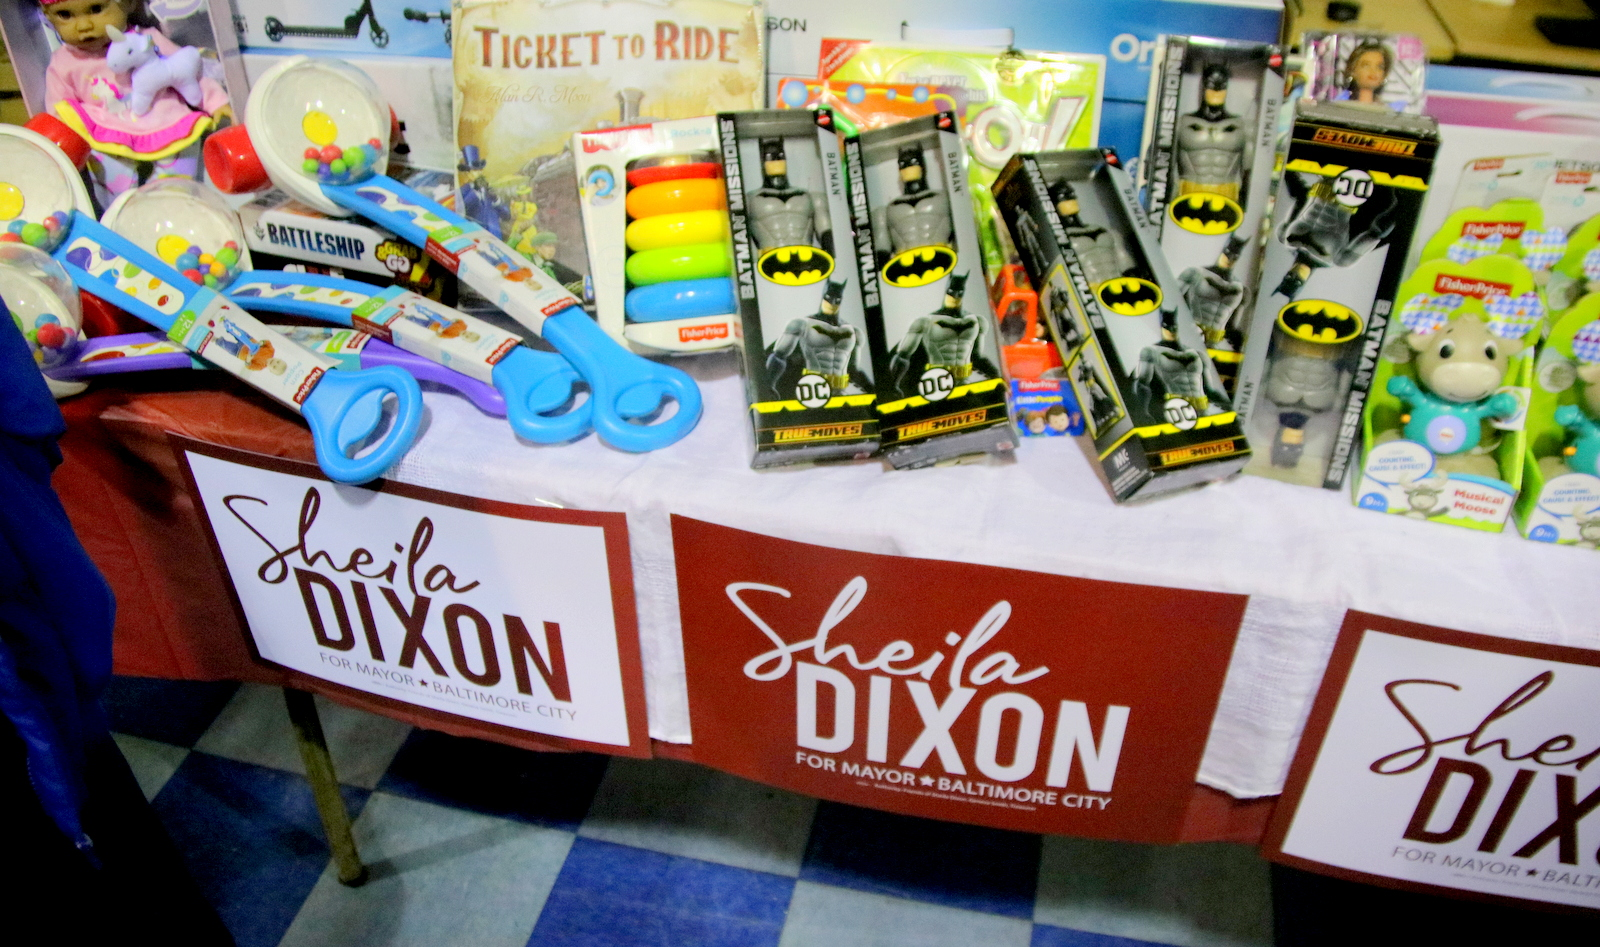 Toys to be given away to area children, donated by supporters at Sheila Dixon's campaign announcement. (Fern Shen)